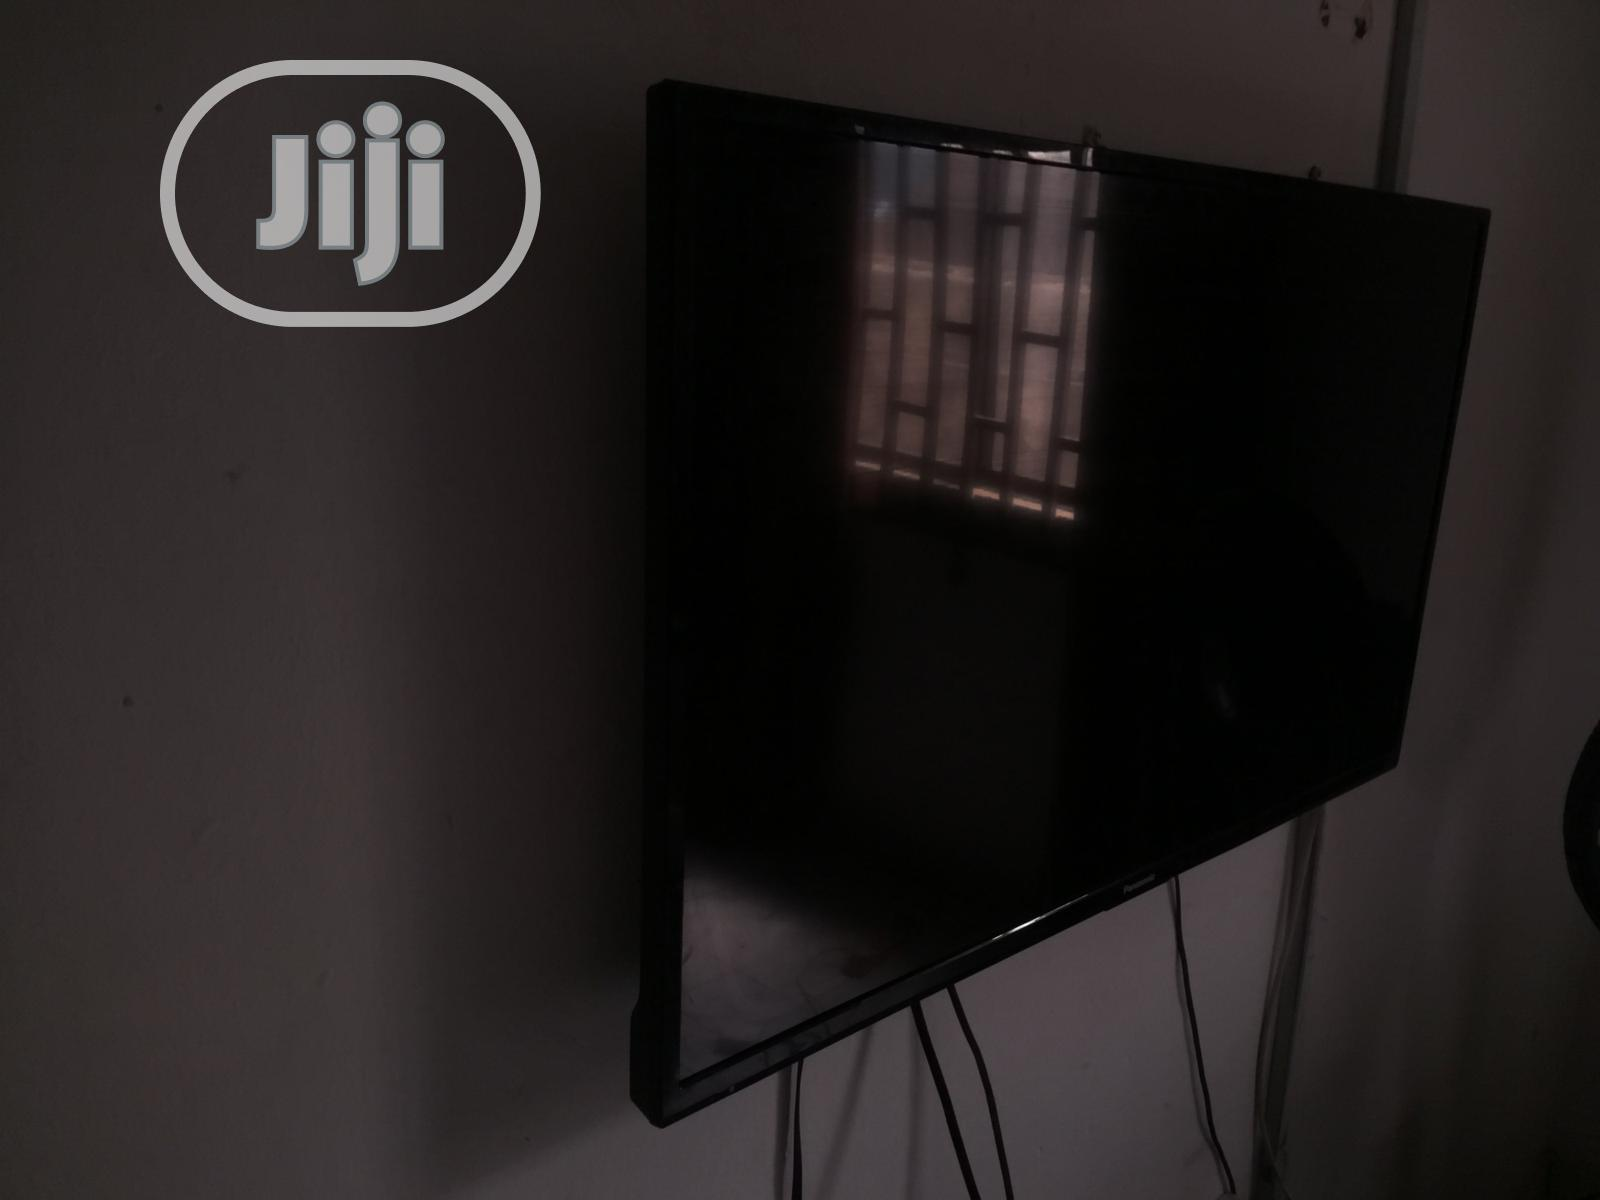 Archive: 36-Inch LED Panasonic TV